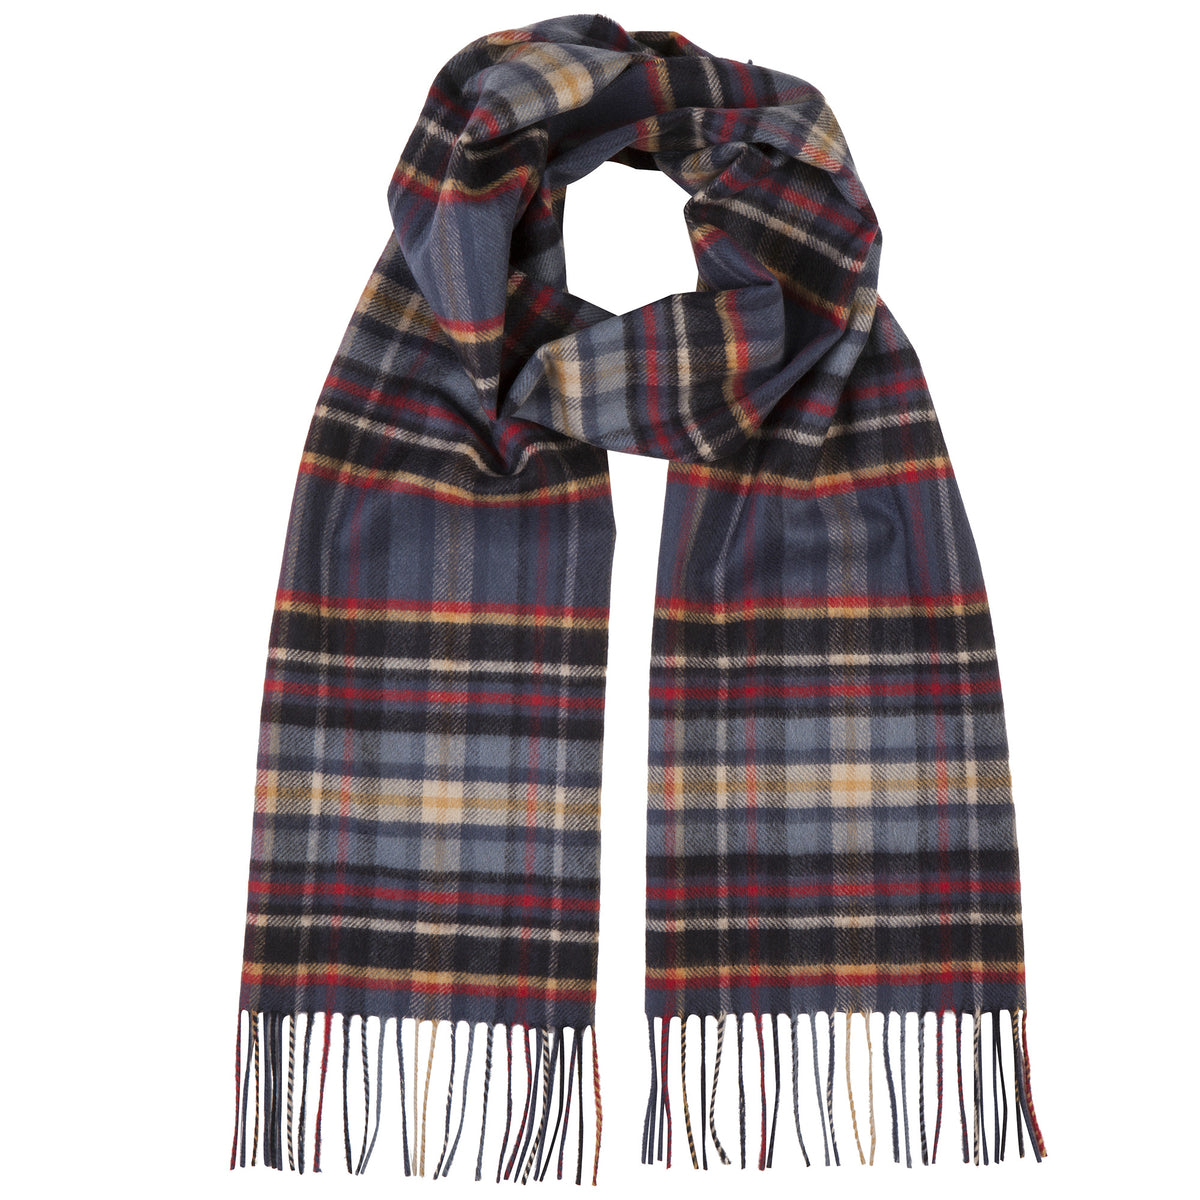 Johnsons of Elgin | Heldon Tartan Check Cashmere Scarf | buy at The Cashmere Choice | London